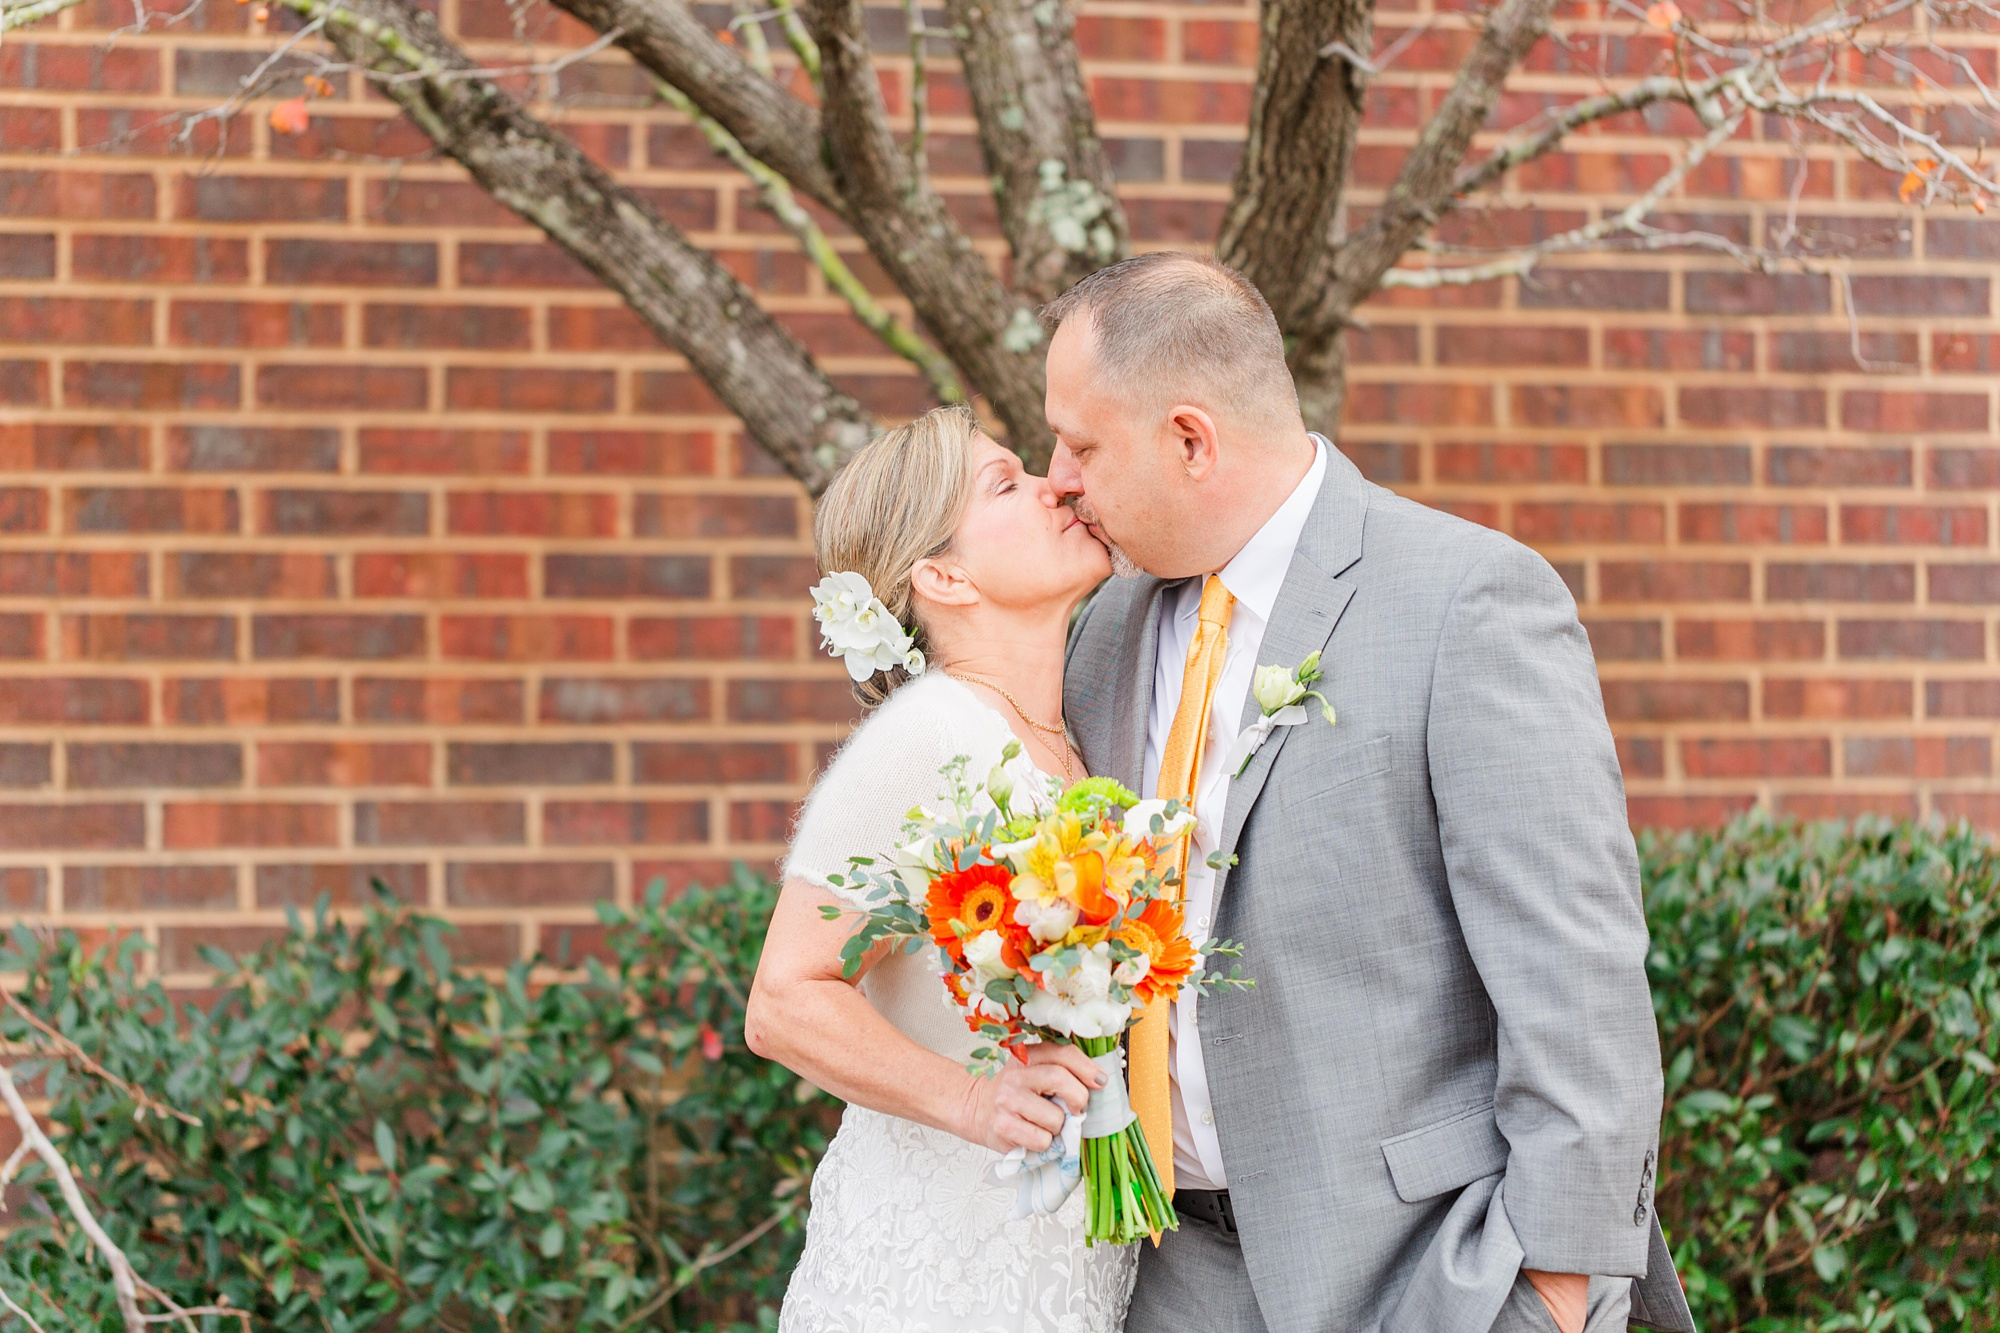 newlyweds kiss by brick building in Mobile AL